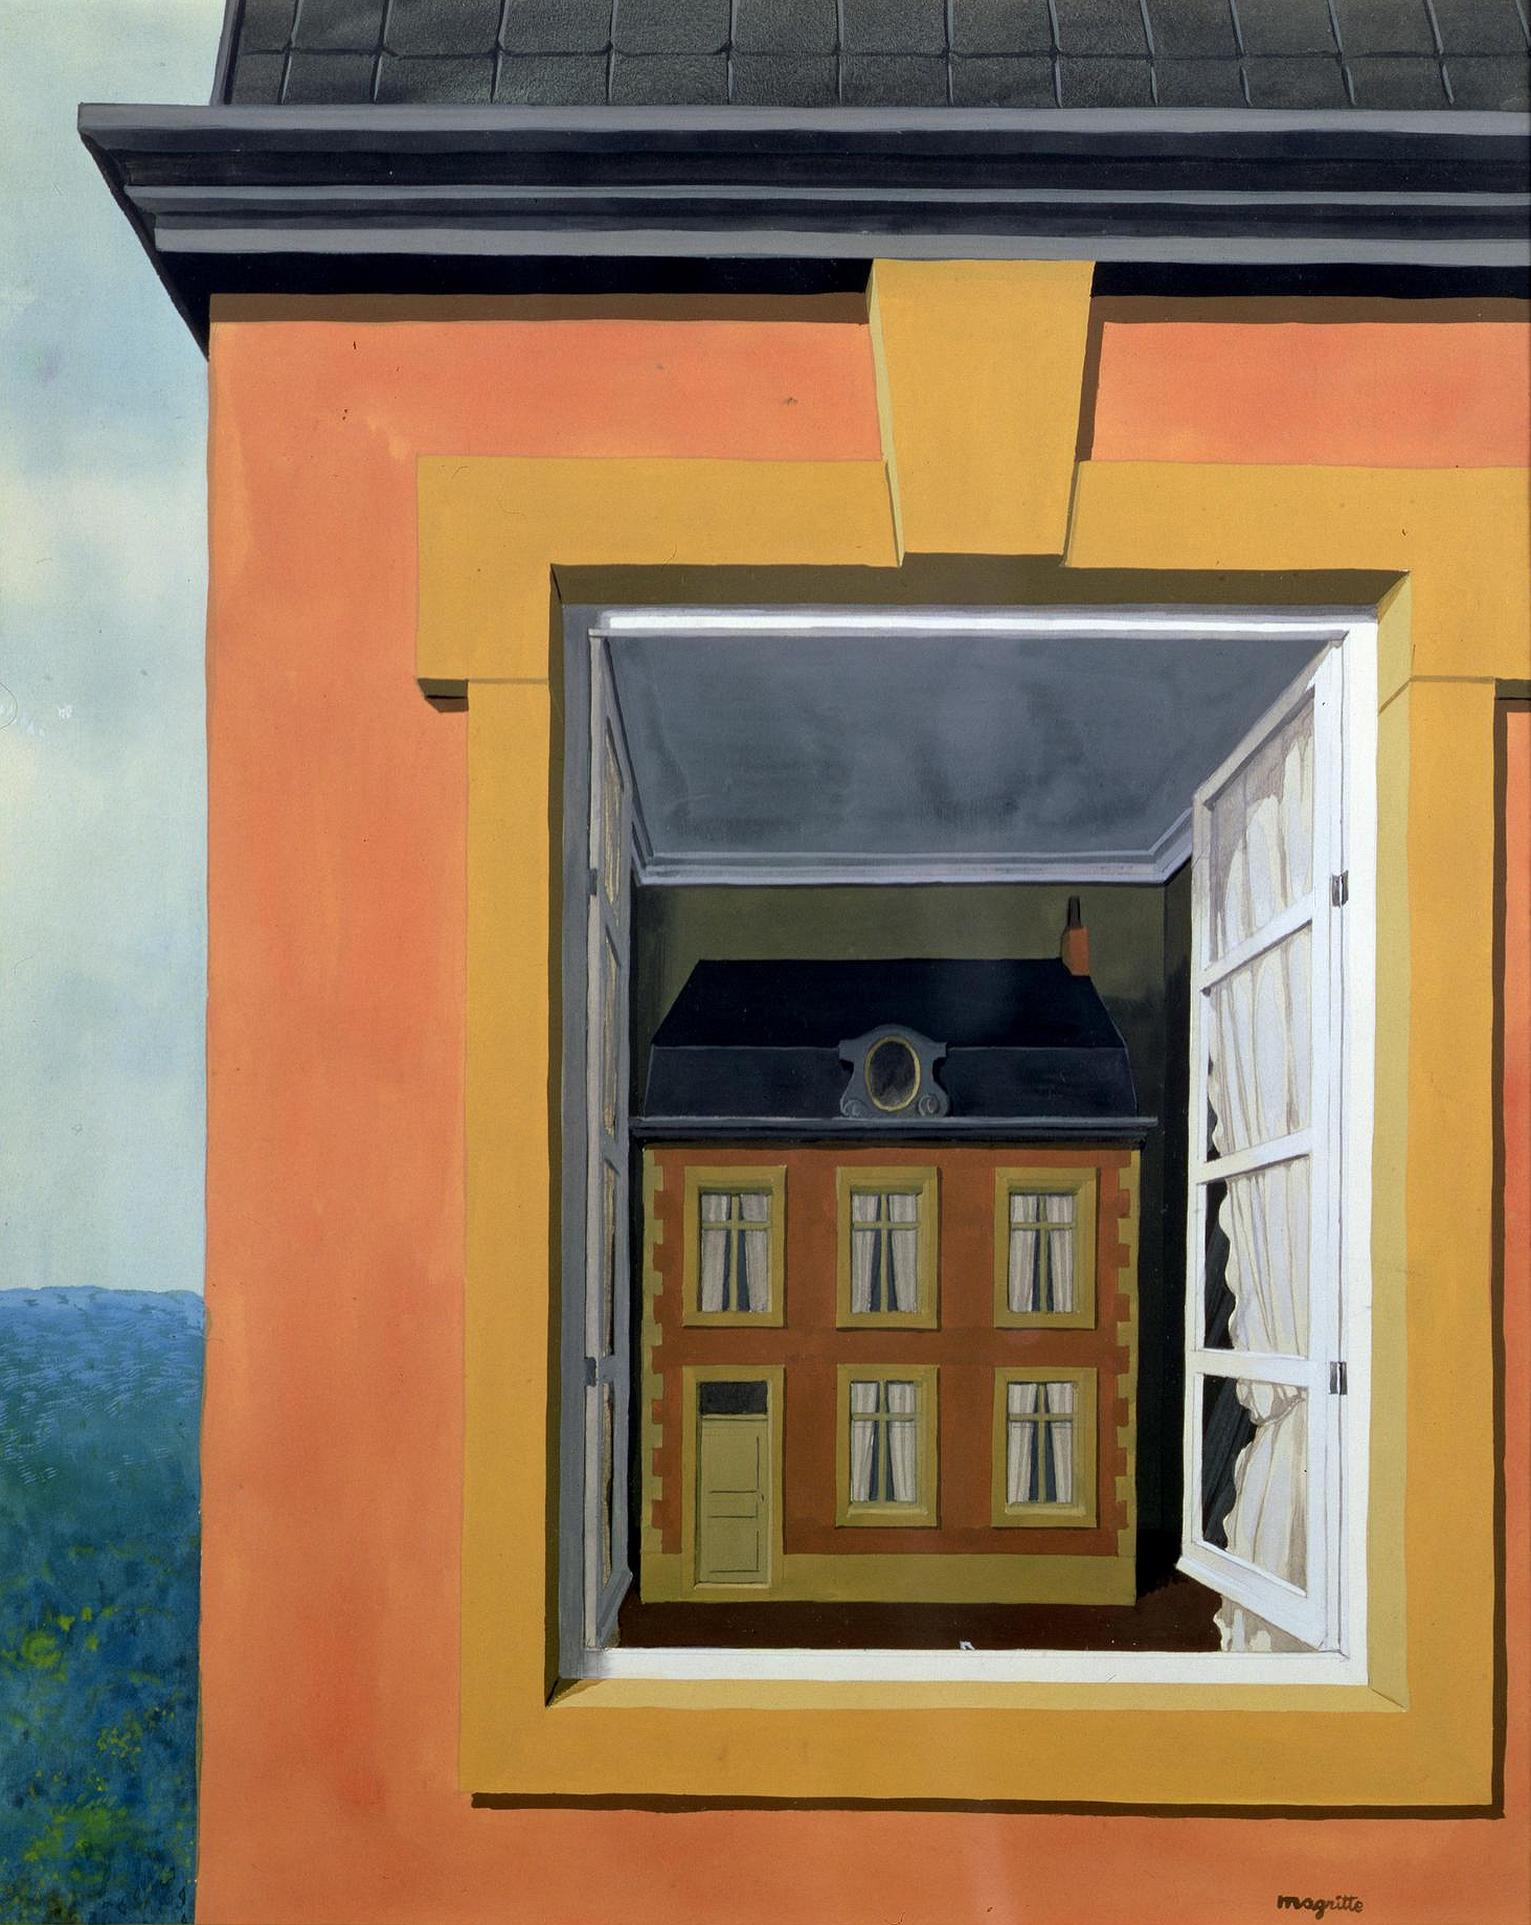 magritte essay Smoke and mirrors: the surreal life and work of rené magritte  speeches, essays and tracts an artist who was perfectionist in his portrayal of objects, he kept denying the value of a.